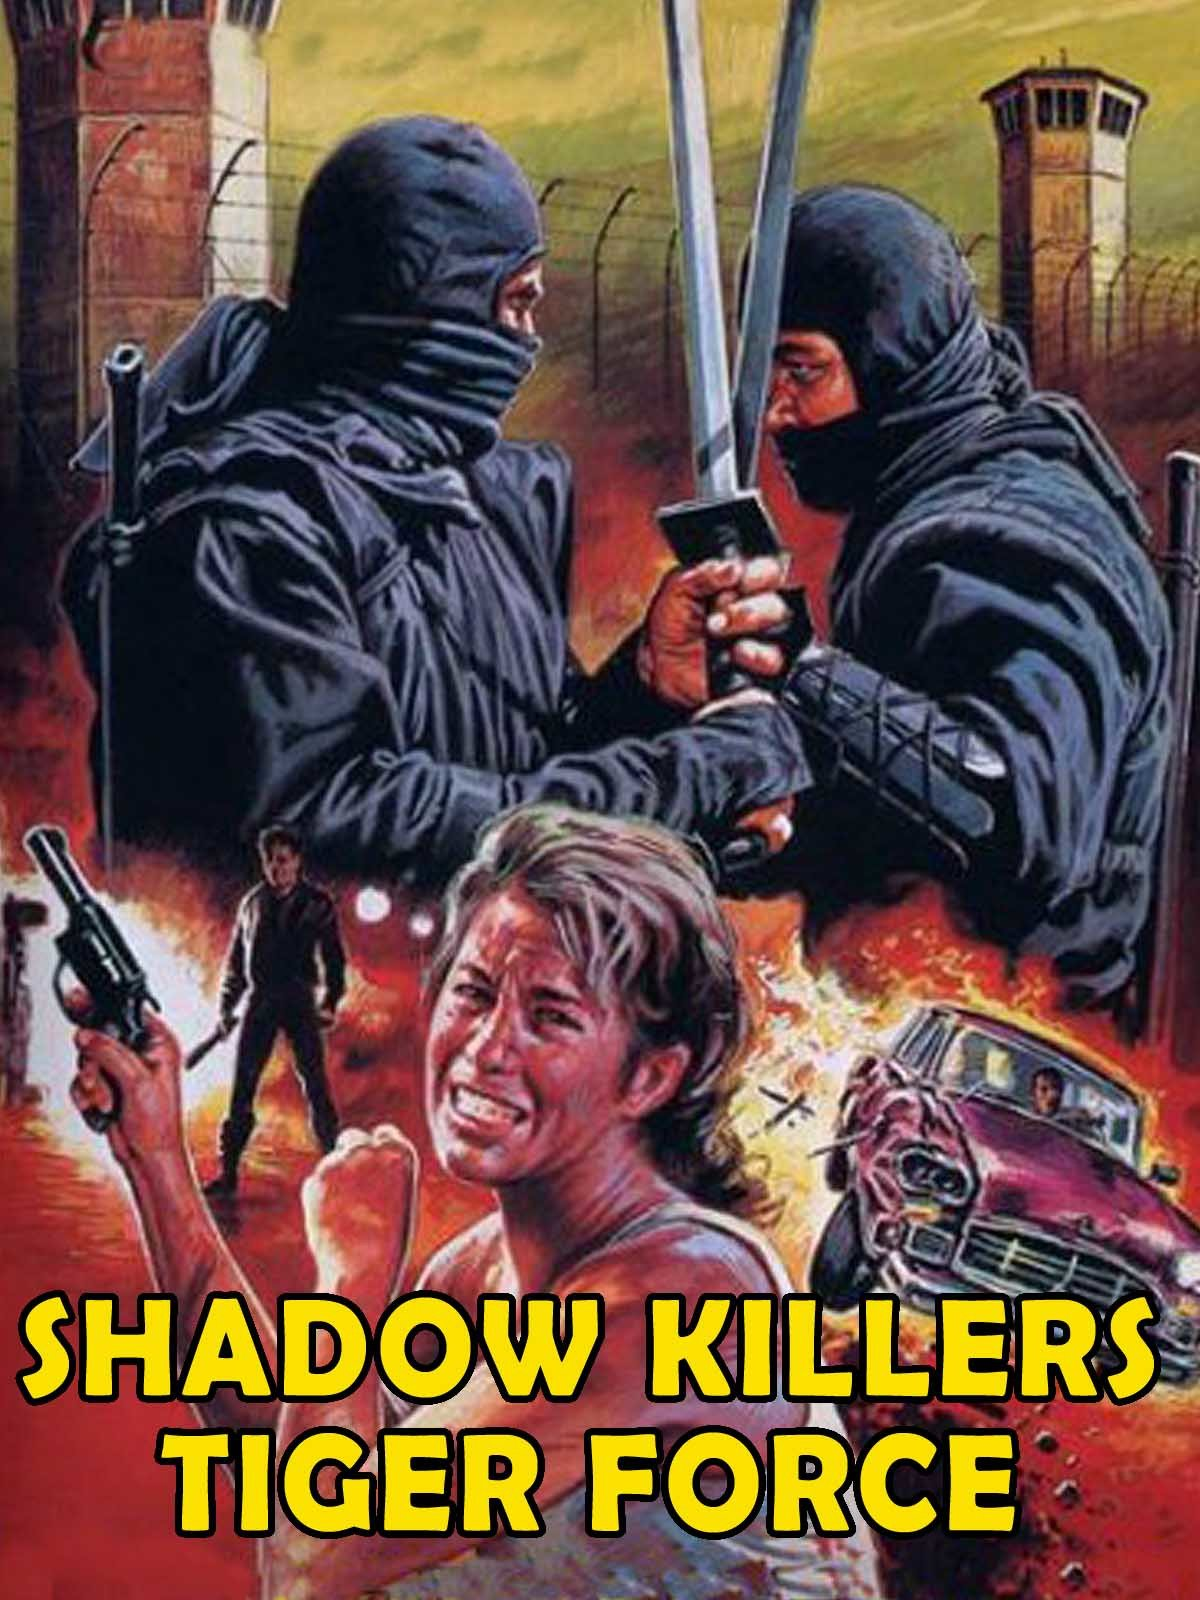 Amazon.com: Watch Shadow Killers Tiger Force | Prime Video